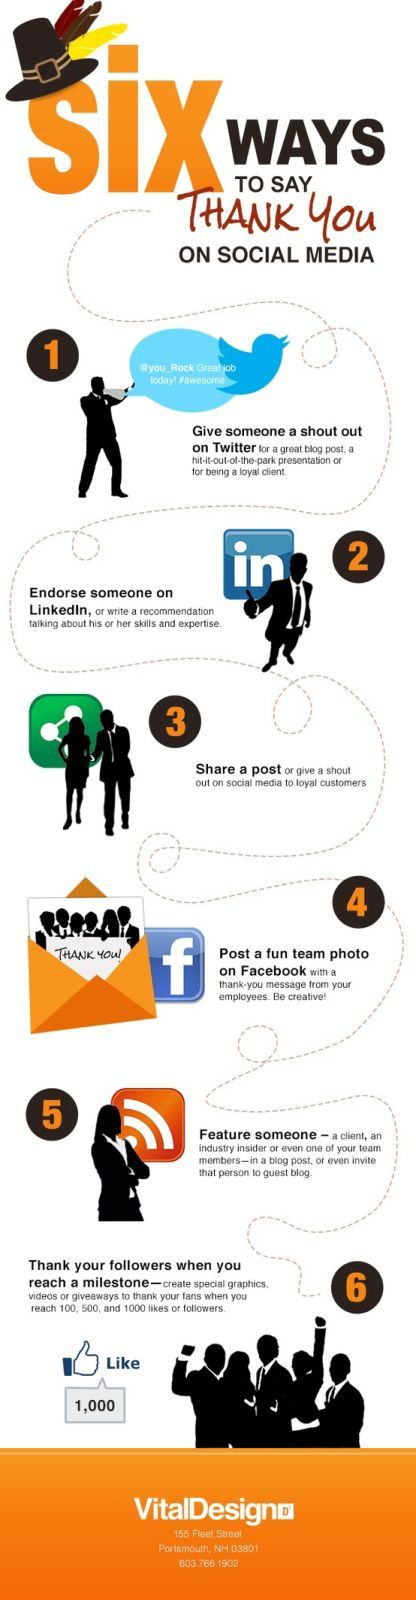 6 Ways To Say Thank You On Social Media [Infographic] - Always say Thanks.